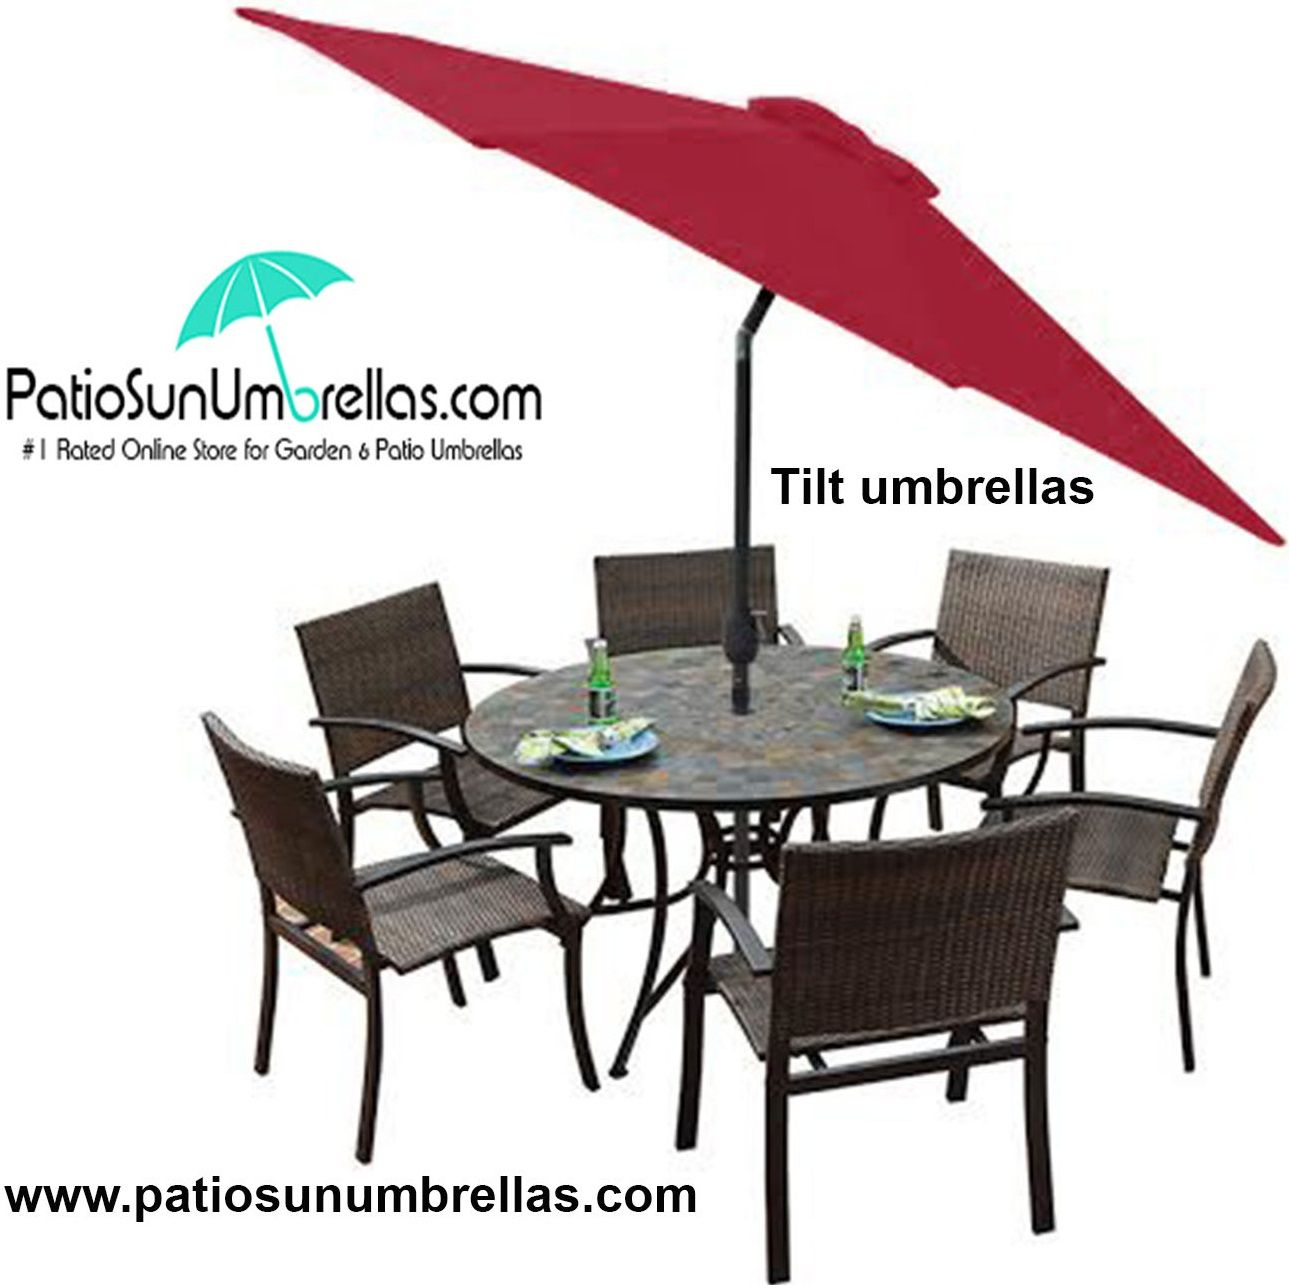 Buy Patio Umberlla Tilt Umbrellas Online With Free Shipping And Lifetime Warranty Patiosunumbrellas Com Umbrella Patio Large Patio Umbrellas